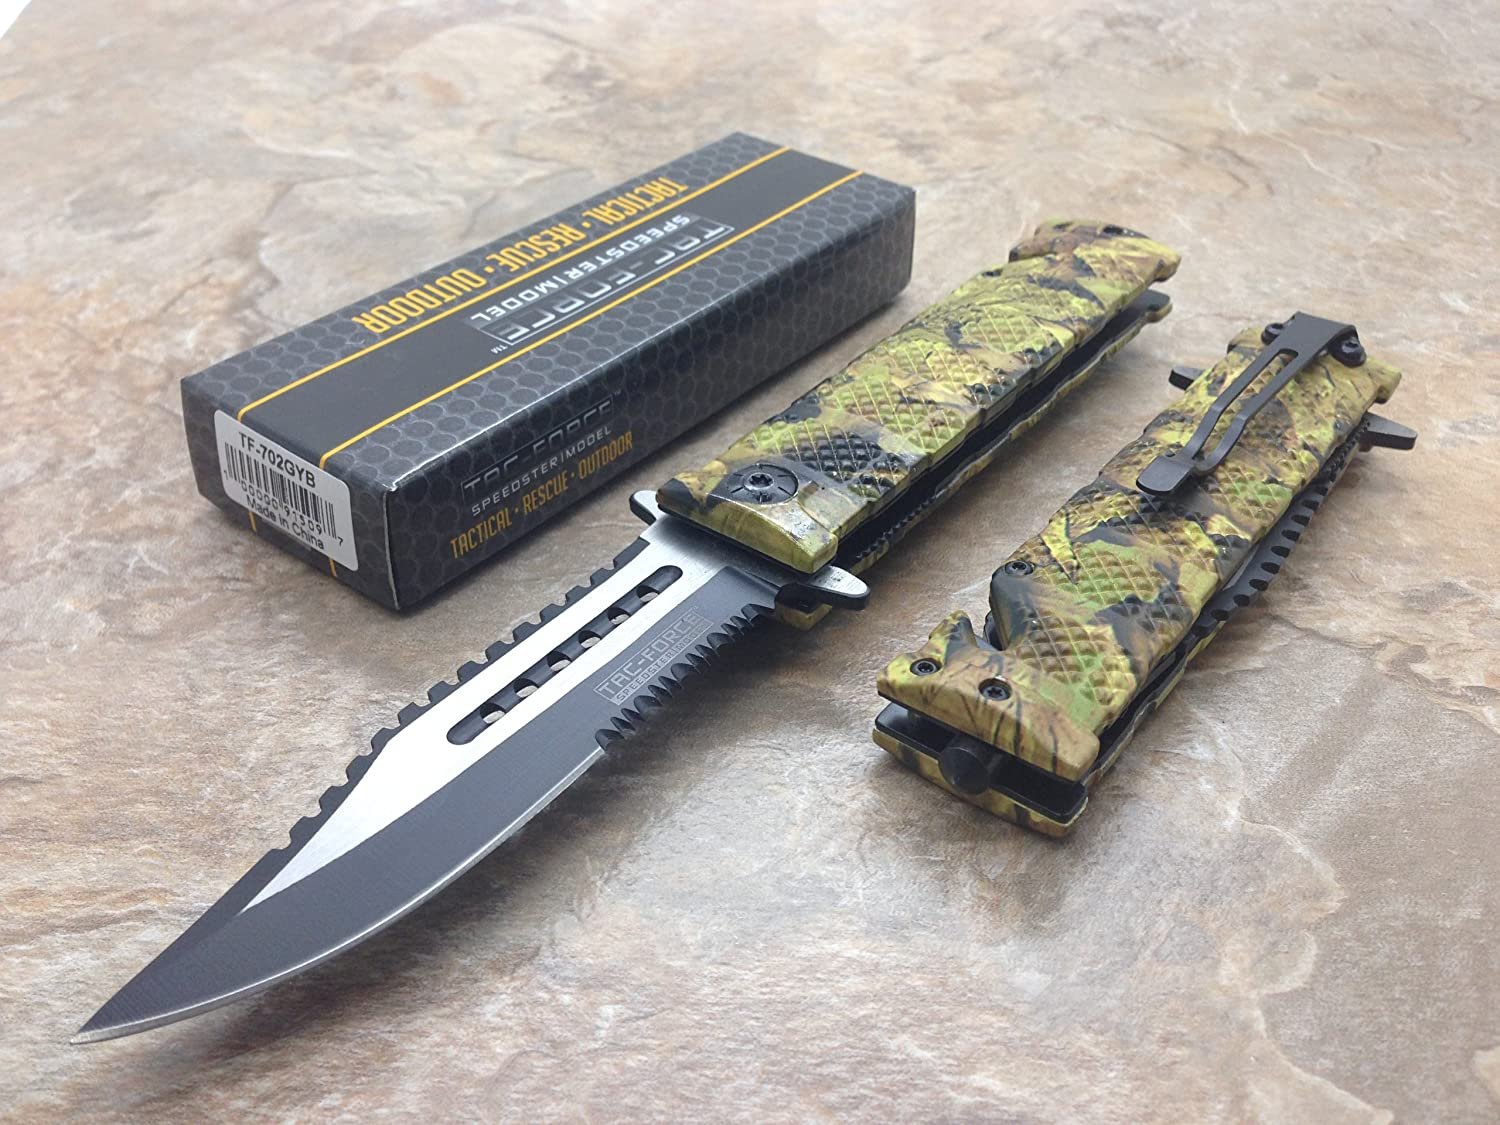 TAC Force Assisted Opening Rescue Tactical Pocket Folding Sawbaw Bowie Knife Outdoor Survival Camping Hunting w/Glass Breaker - Jungle Camo